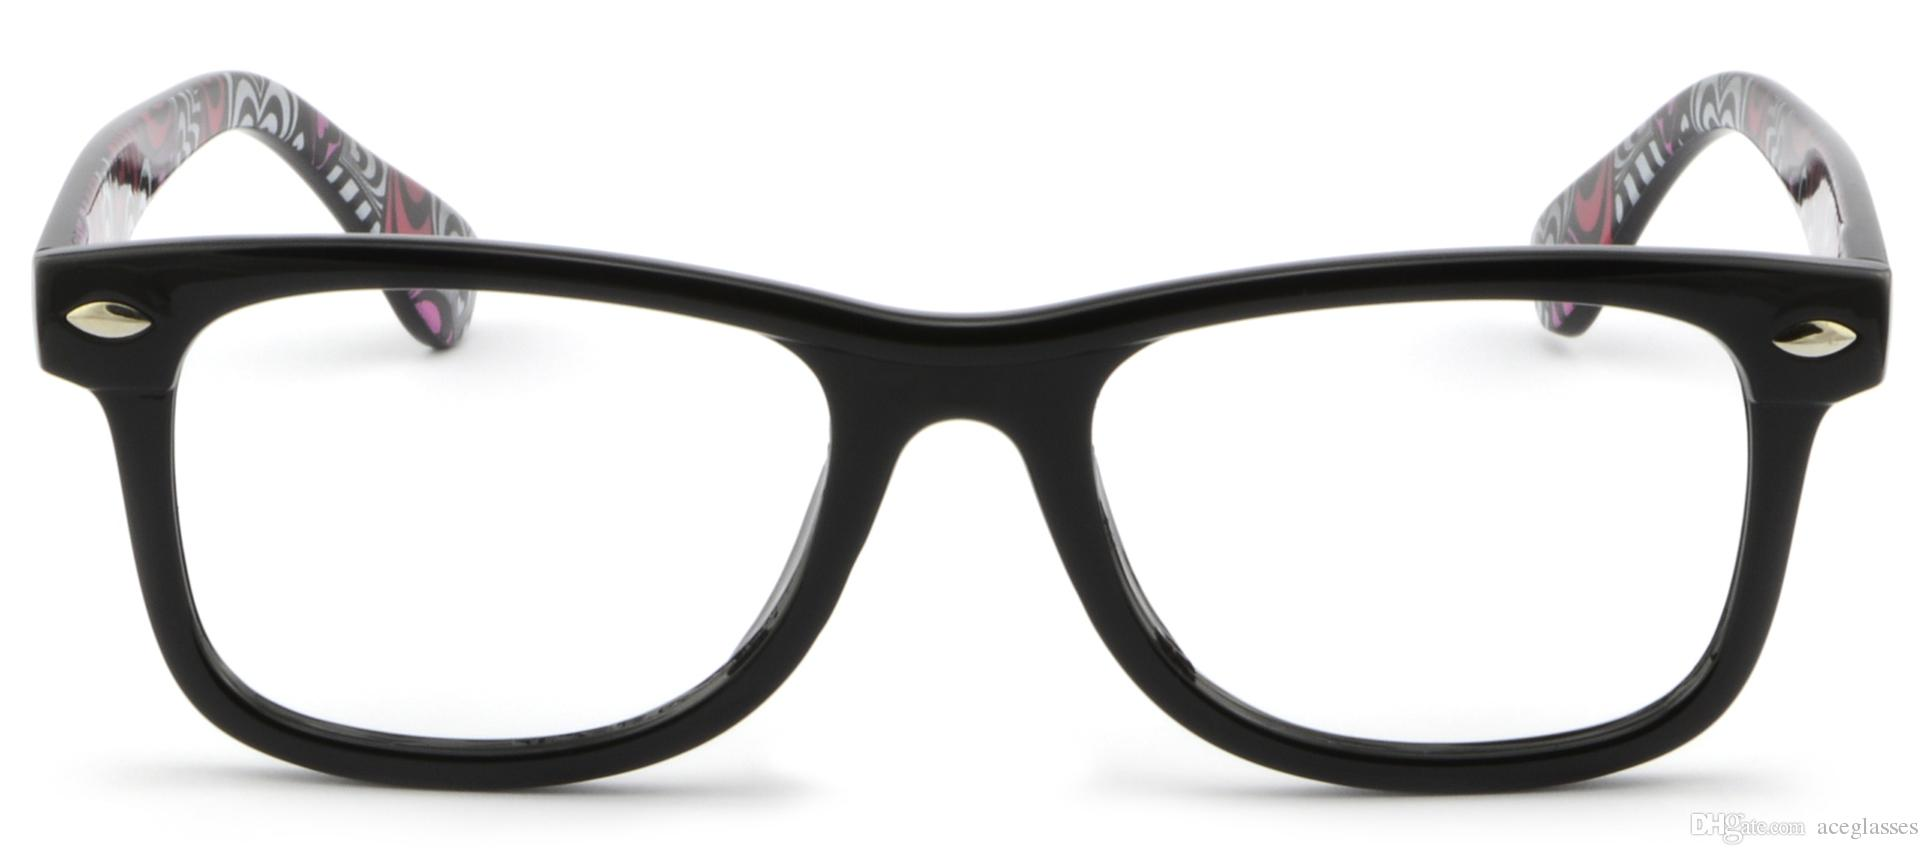 Full Rim Plastic Eyeglasses Mens Womens Frame Heart Swirled Pattern